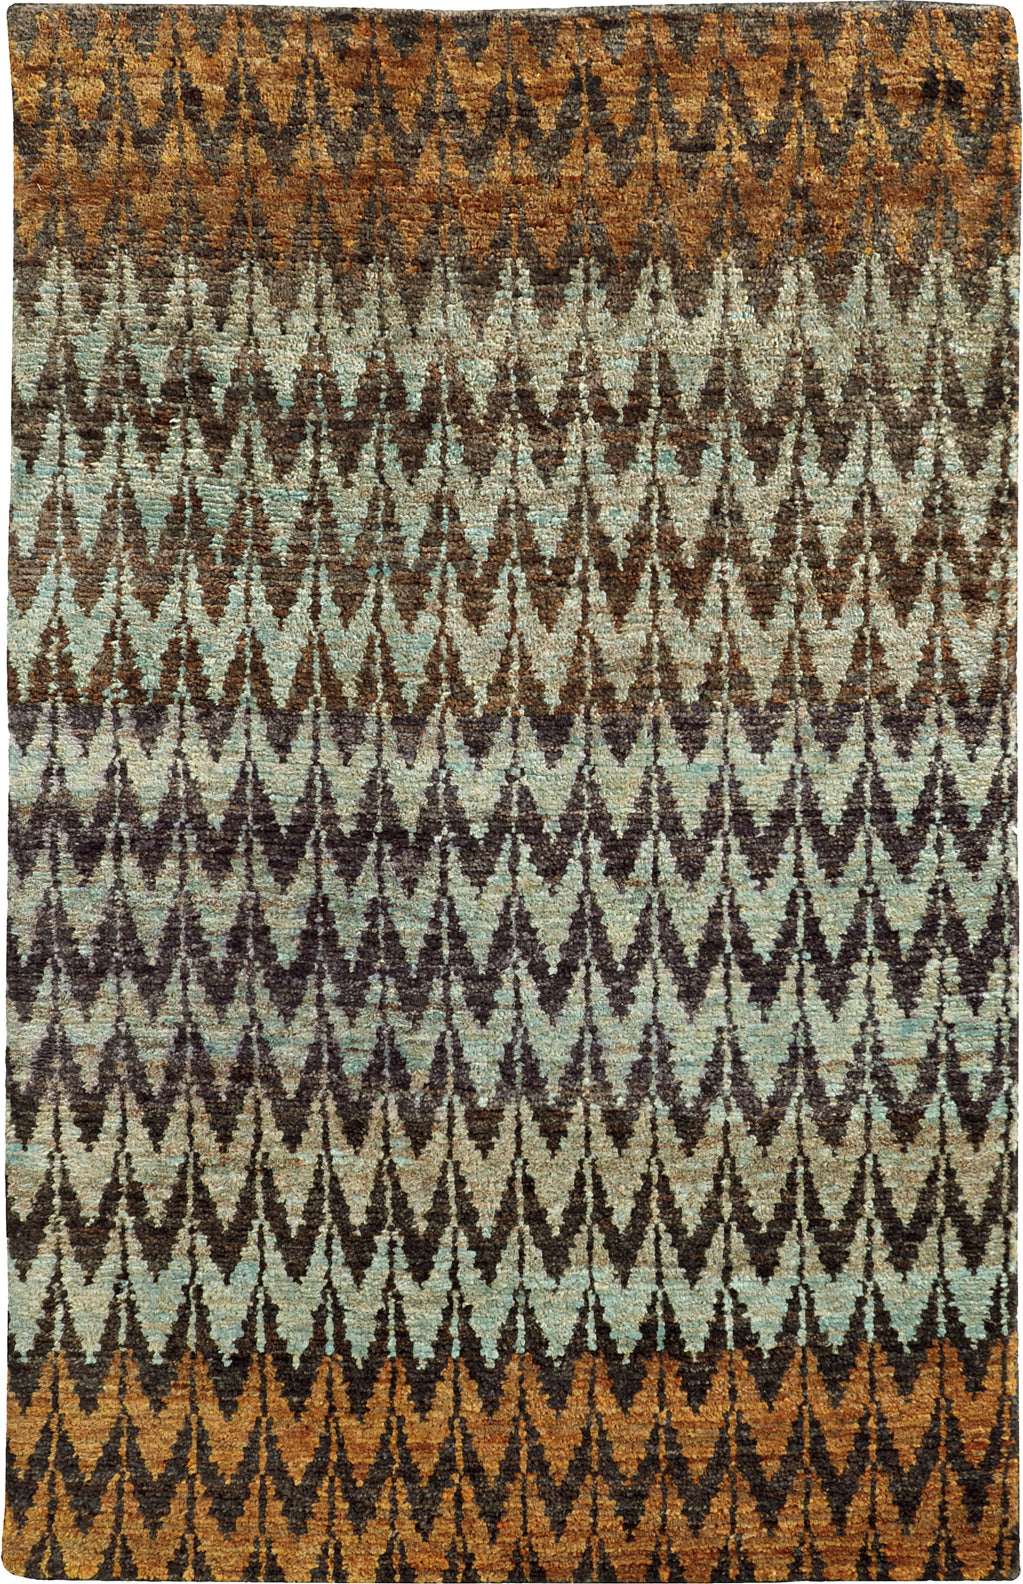 Tommy Bahama Ansley 50908 Brown Area Rug main image